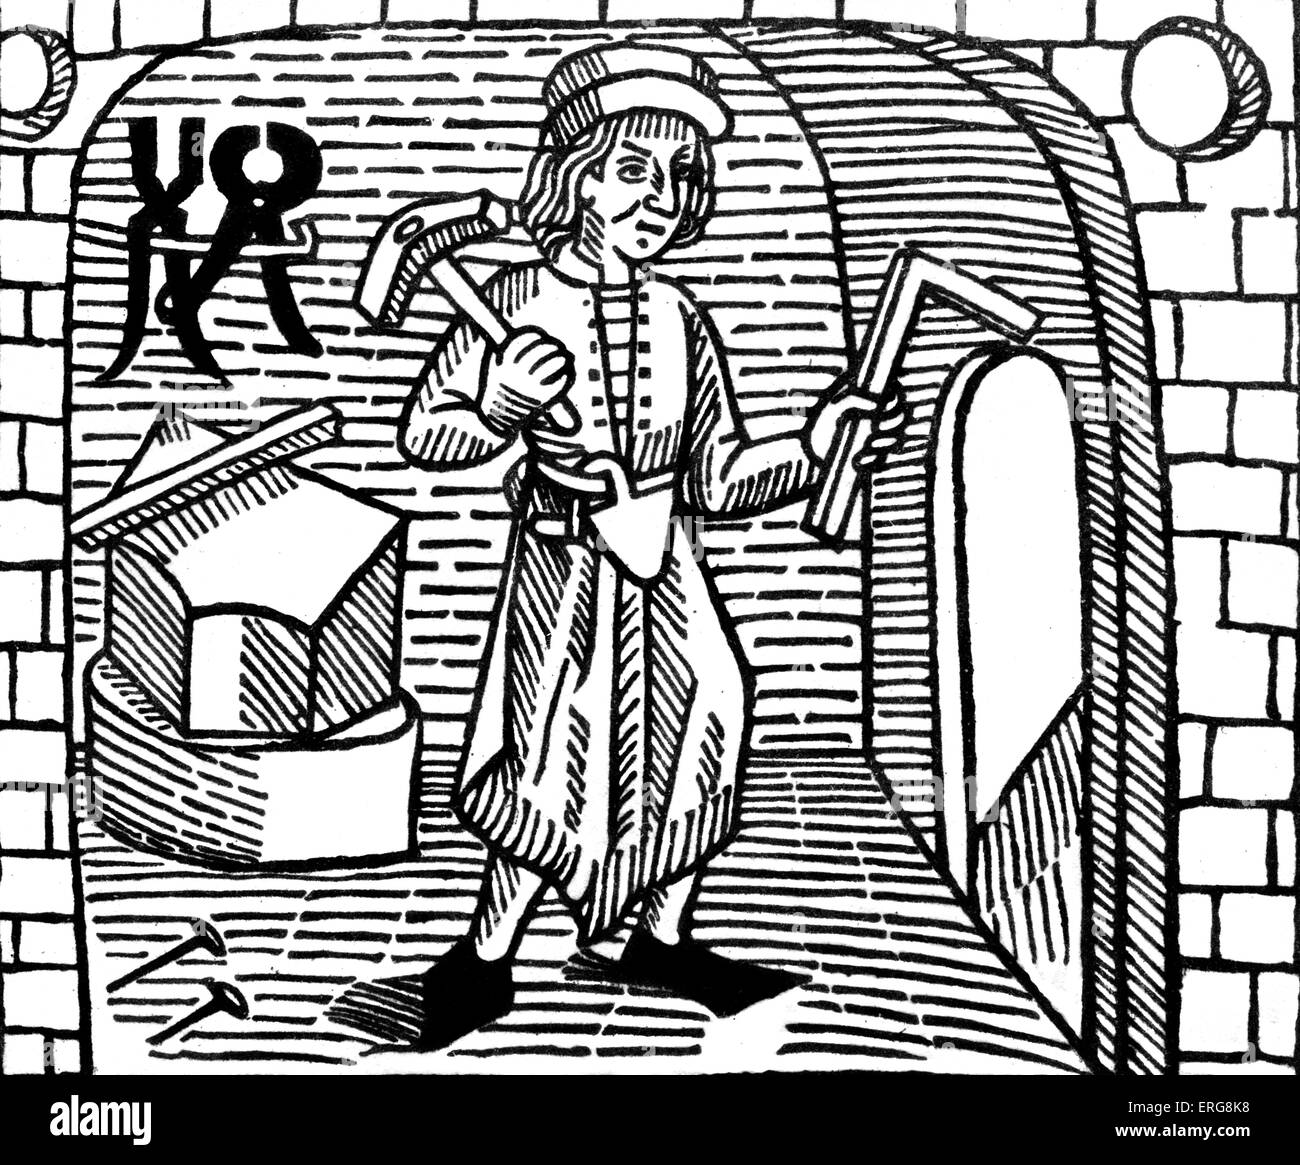 Builder - 15th century. Woodcut from William Caxton 's The Game of Chesse, c. 1474. English merchant, diplomat, - Stock Image